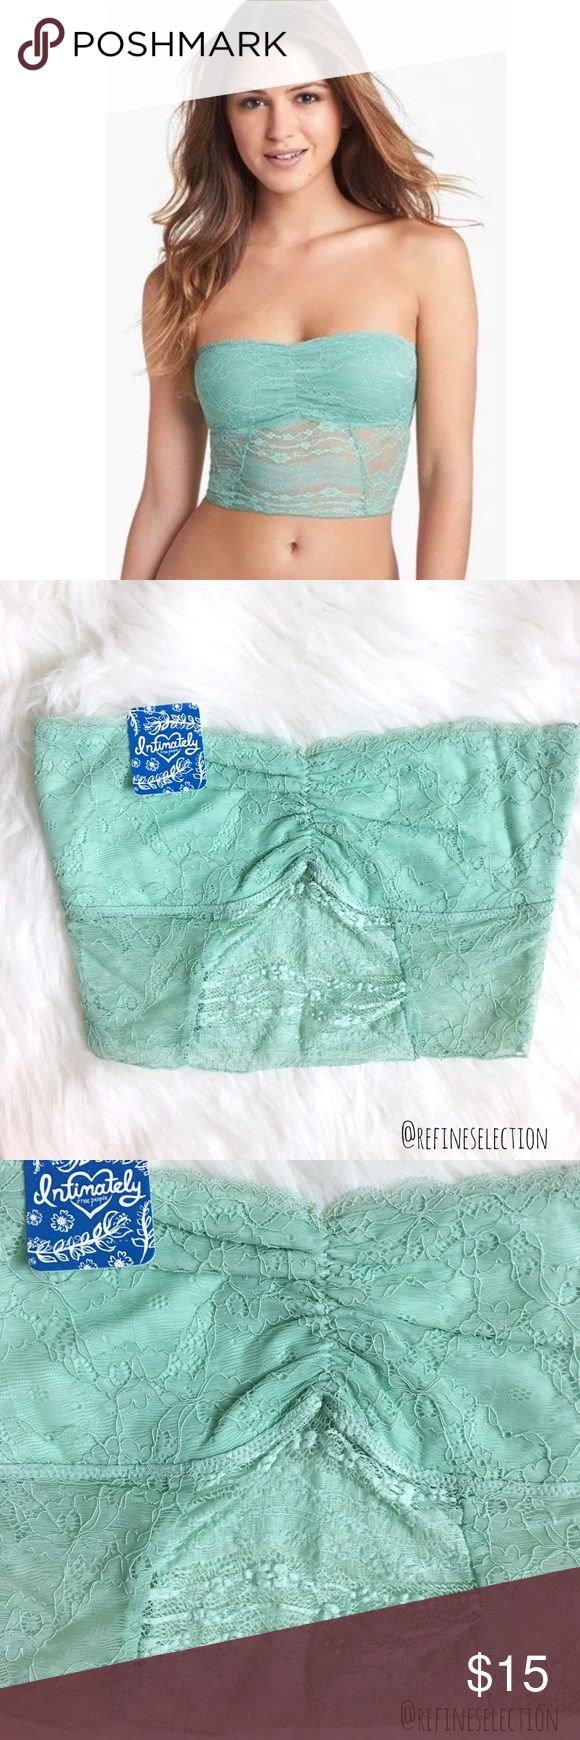 Free People Galloon Lace Crop Seafoam Bandeau Brand new with tags, available in size XS, Small and Medium. This Free People Galloon Lace Crop Seafoam Green Bandeau is perfect to layer under a loose tank top or tee! Made of soft, flexible lace, it is so comfortable and stylish. Unpadded. Love the scallop detailing on top. Made of 82% Nylon and 18% Spandex. The last 2 pictures are of the same bandeau, in a slightly different color, posted to show the fit. Other colors and sizes also available…